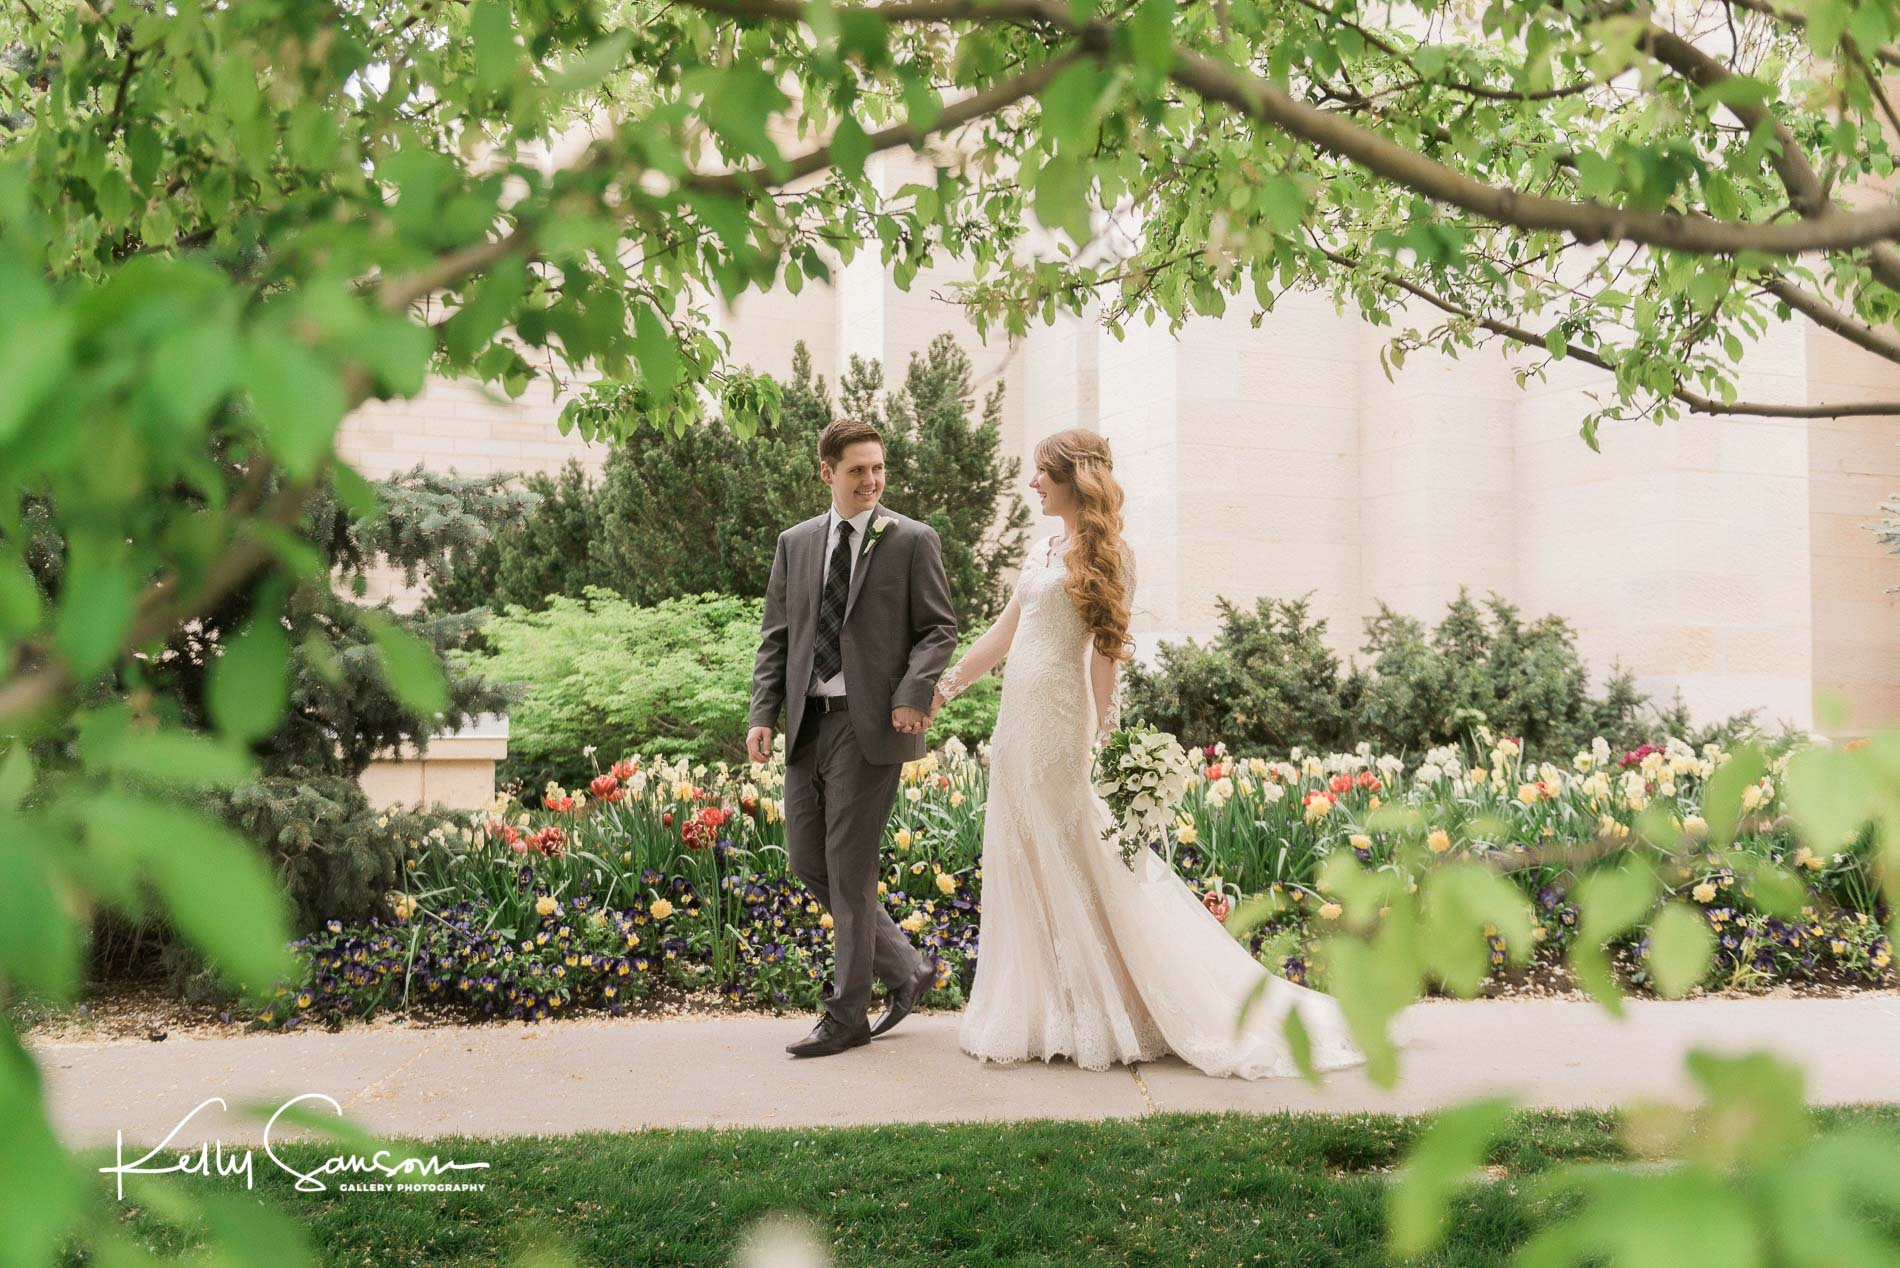 A groom leading his bride by the hand through some trees for Manti temple wedding photography.